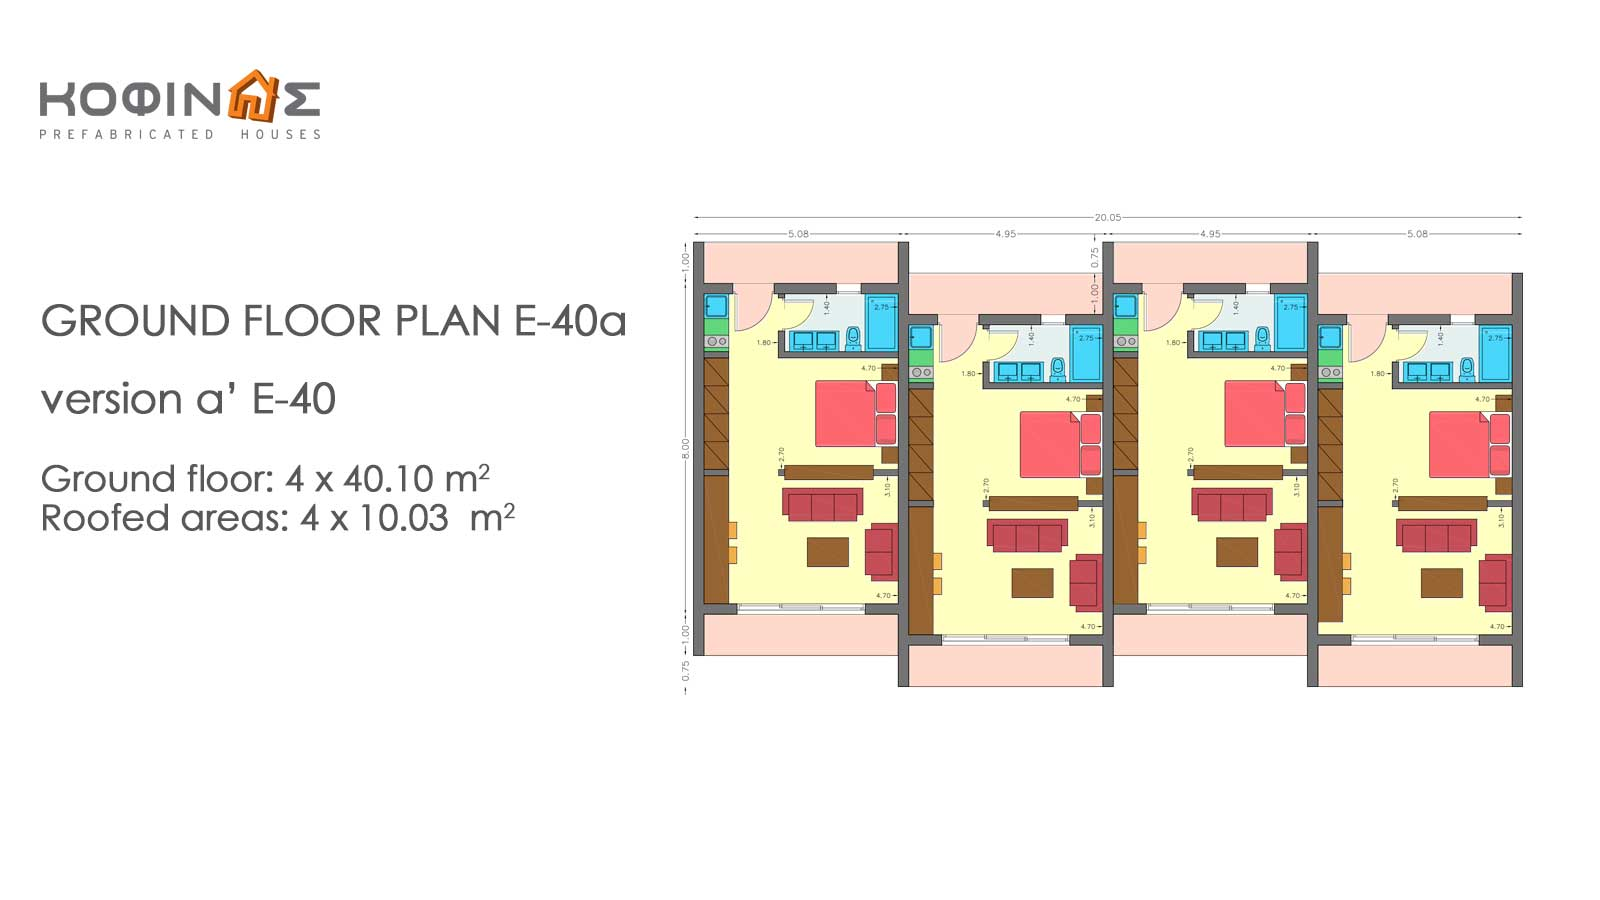 Complex of 1-story houses E-40a, total surface of 4 x 40,10 = 160,40 m²